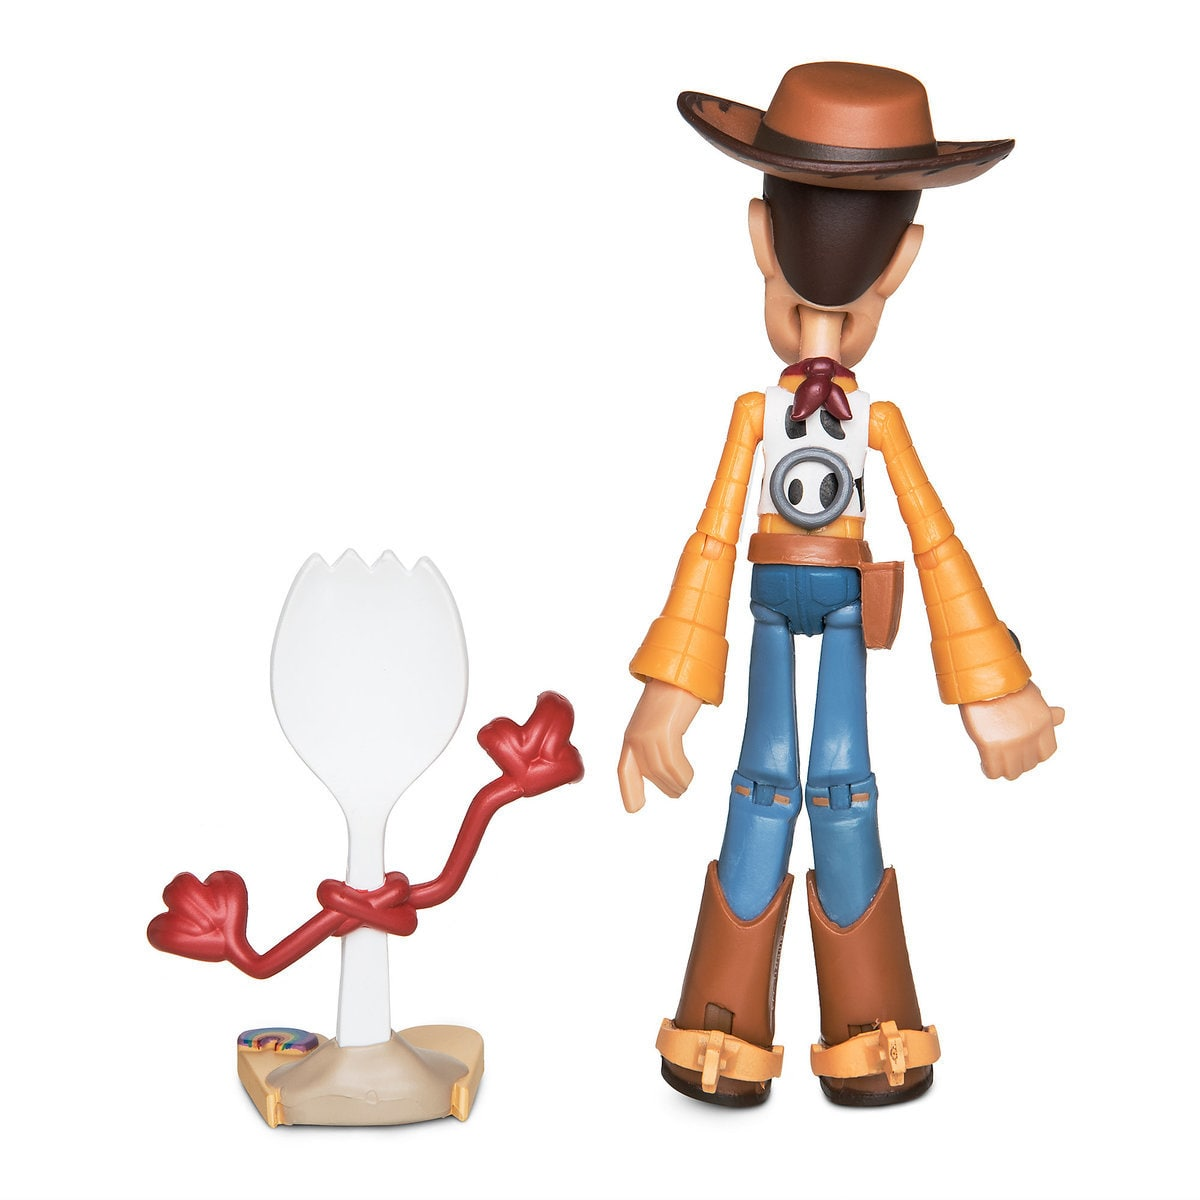 Disney Toy Story 4 Woody and Forky Action Figure Toybox New with Box